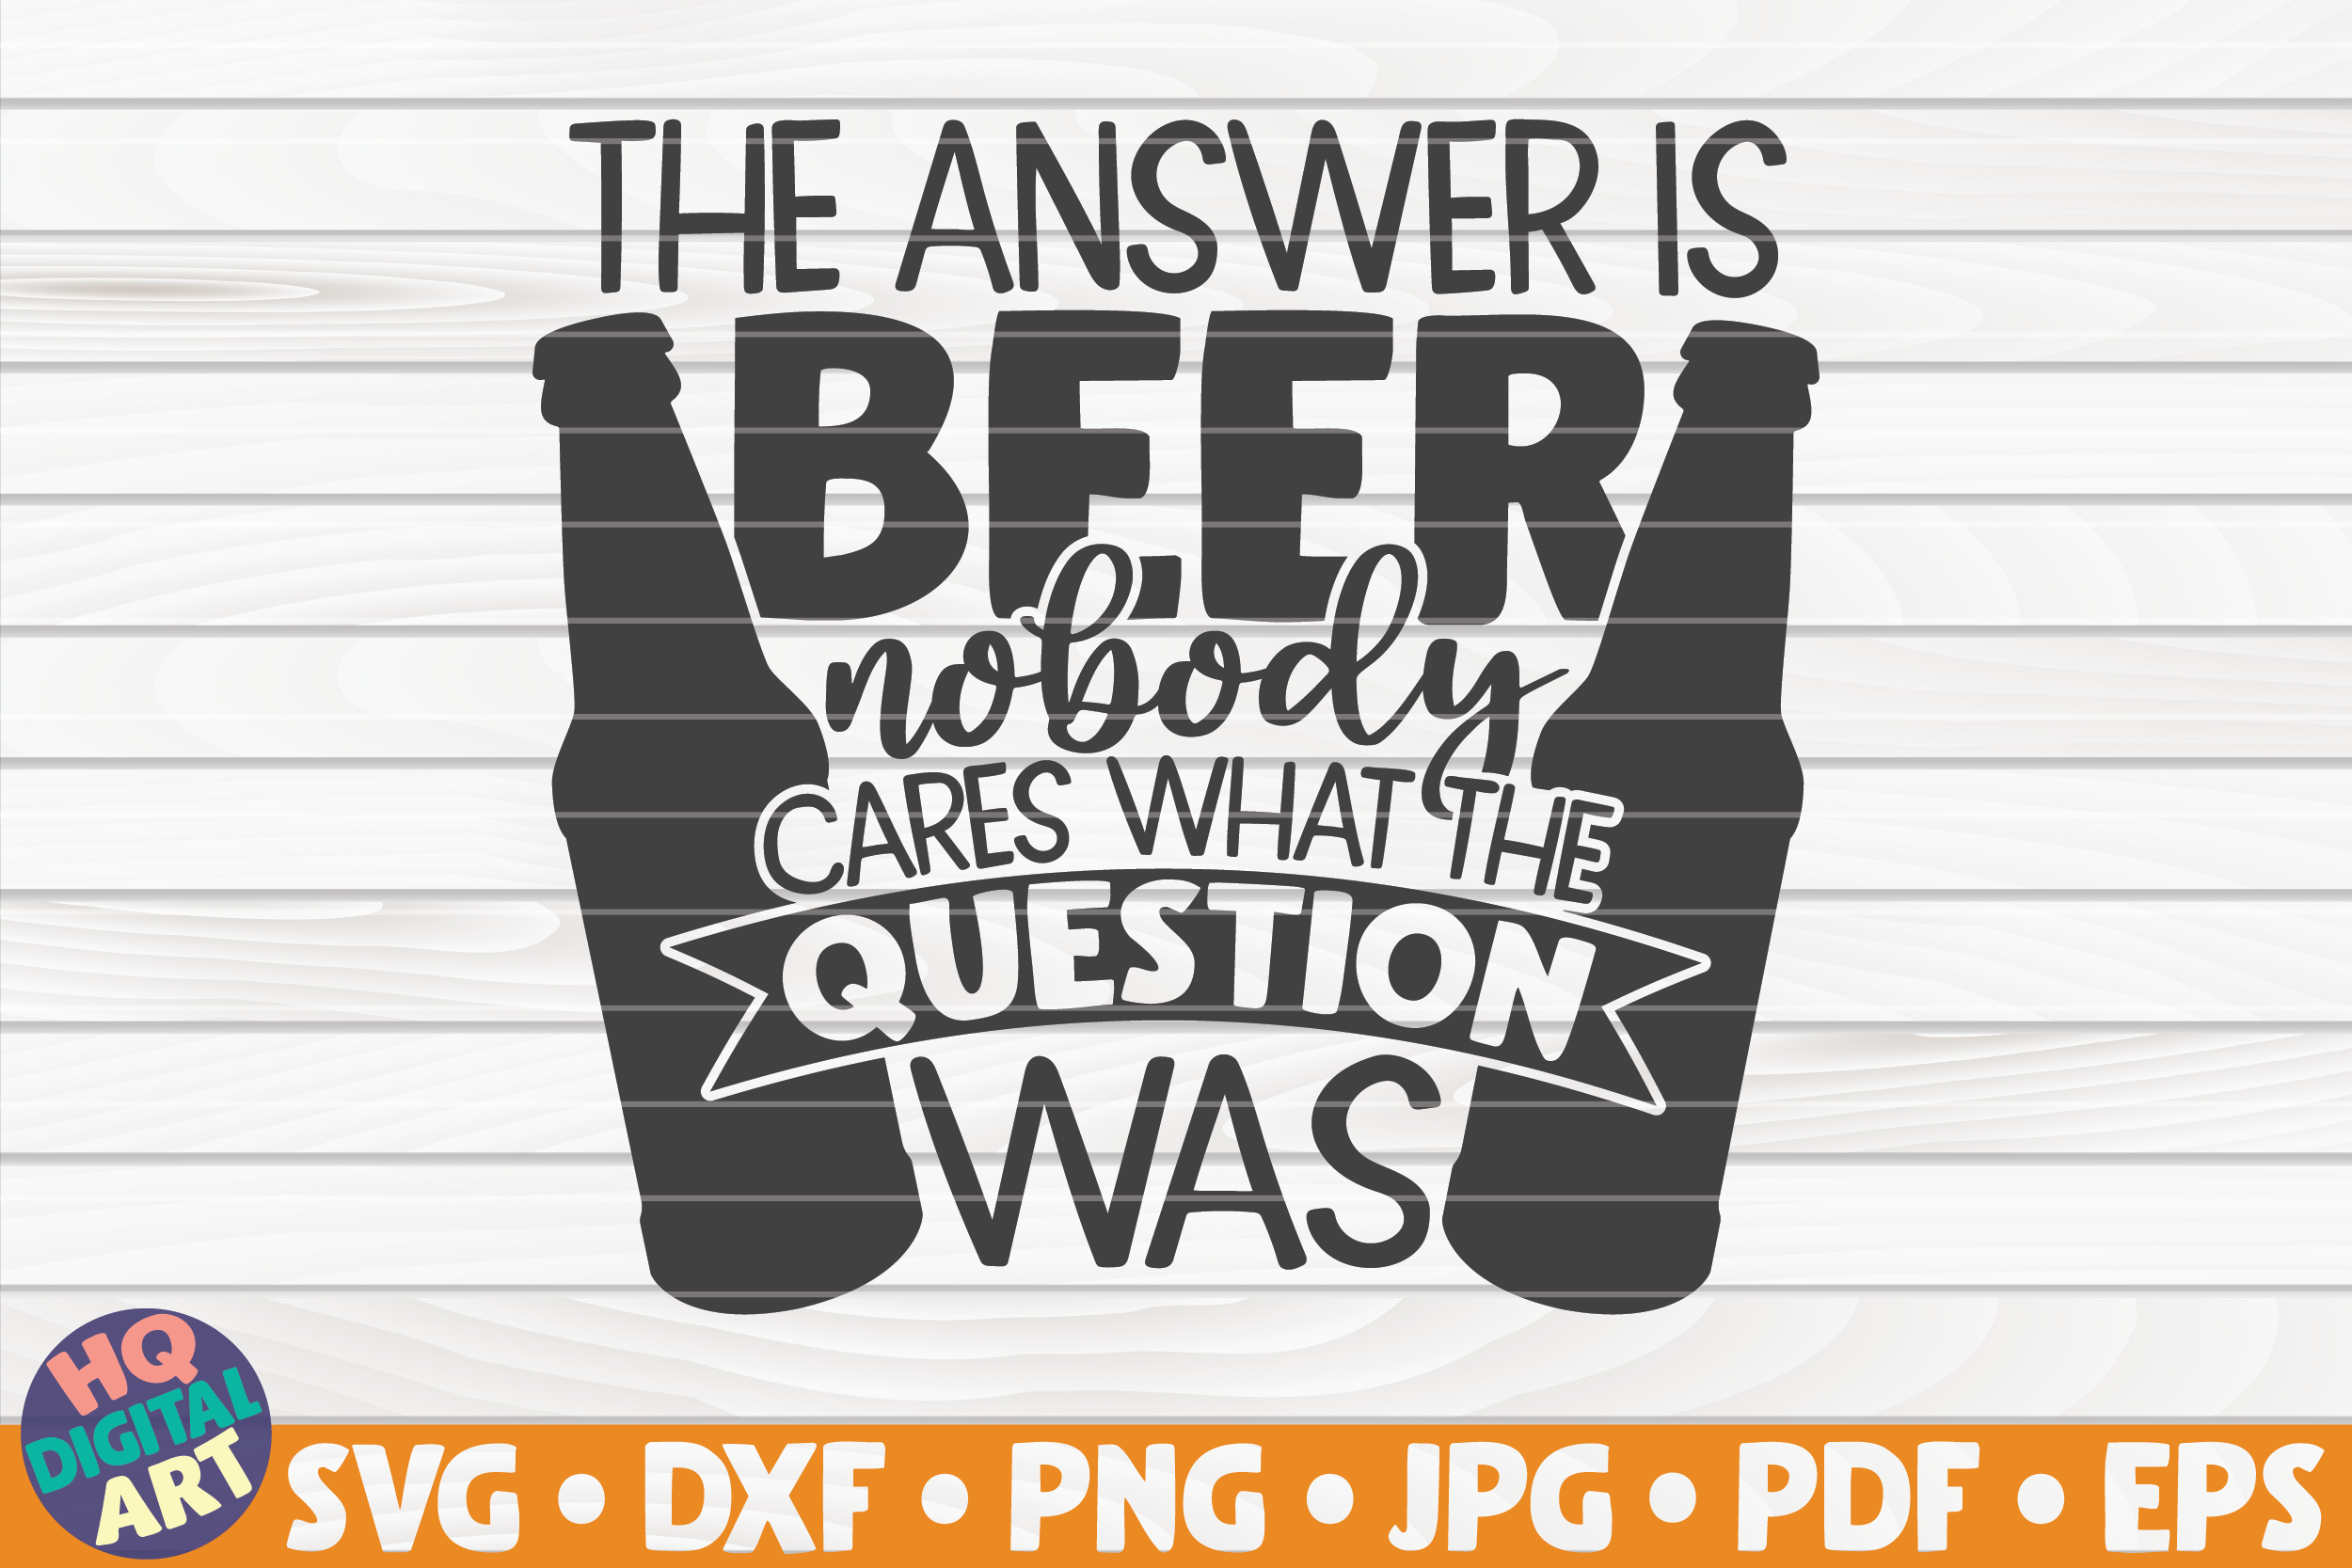 Download Free The Answer Is Beer Svg Beer Quote Graphic By Mihaibadea95 for Cricut Explore, Silhouette and other cutting machines.